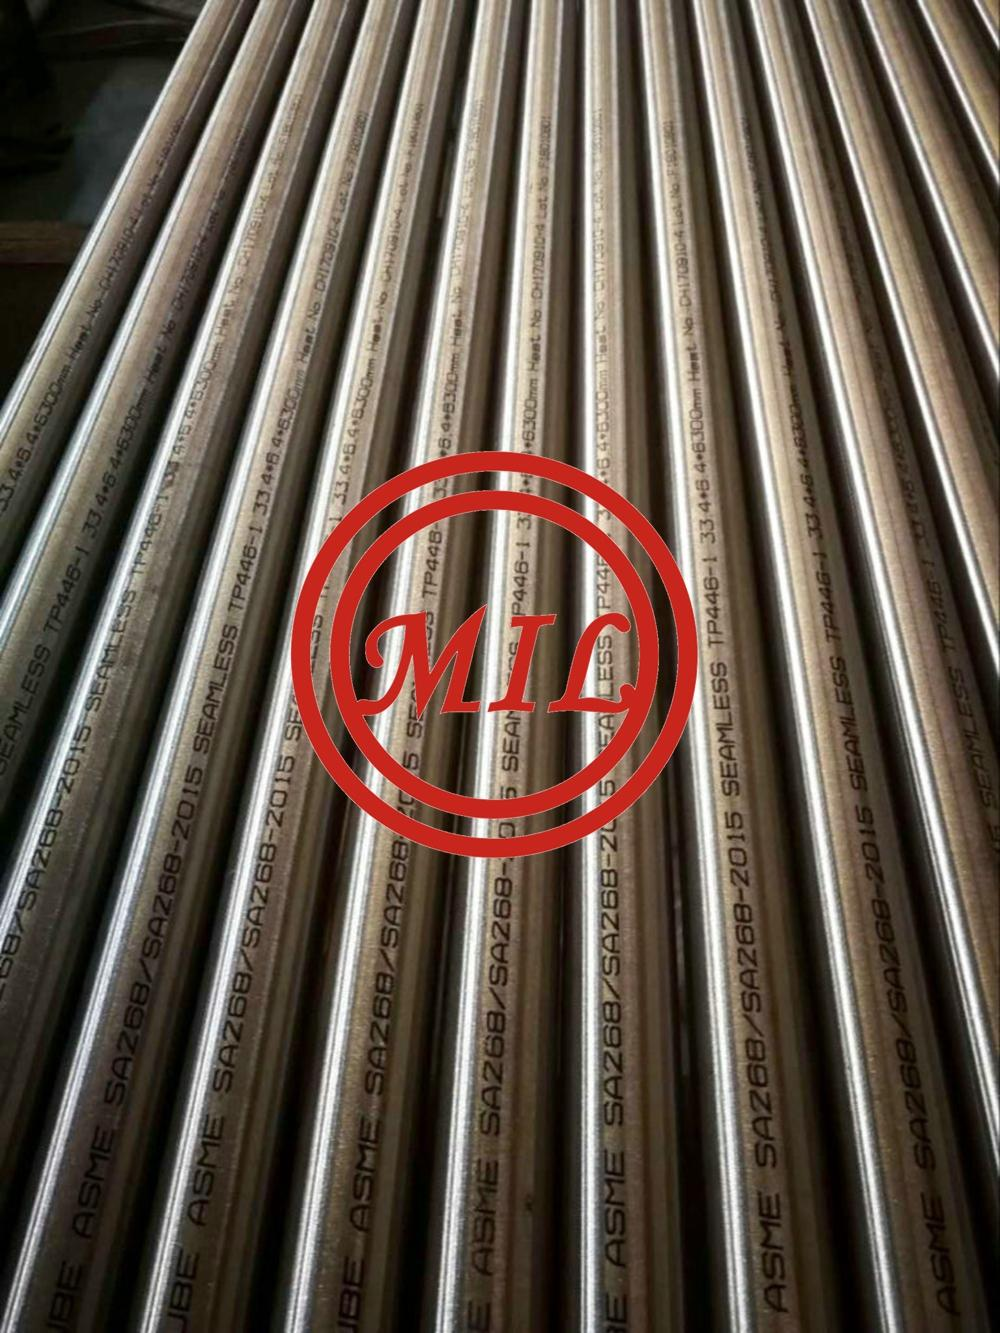 A268-TP446-1 FERRITIC STAINLESS STEEL SEAMLESS TUBE